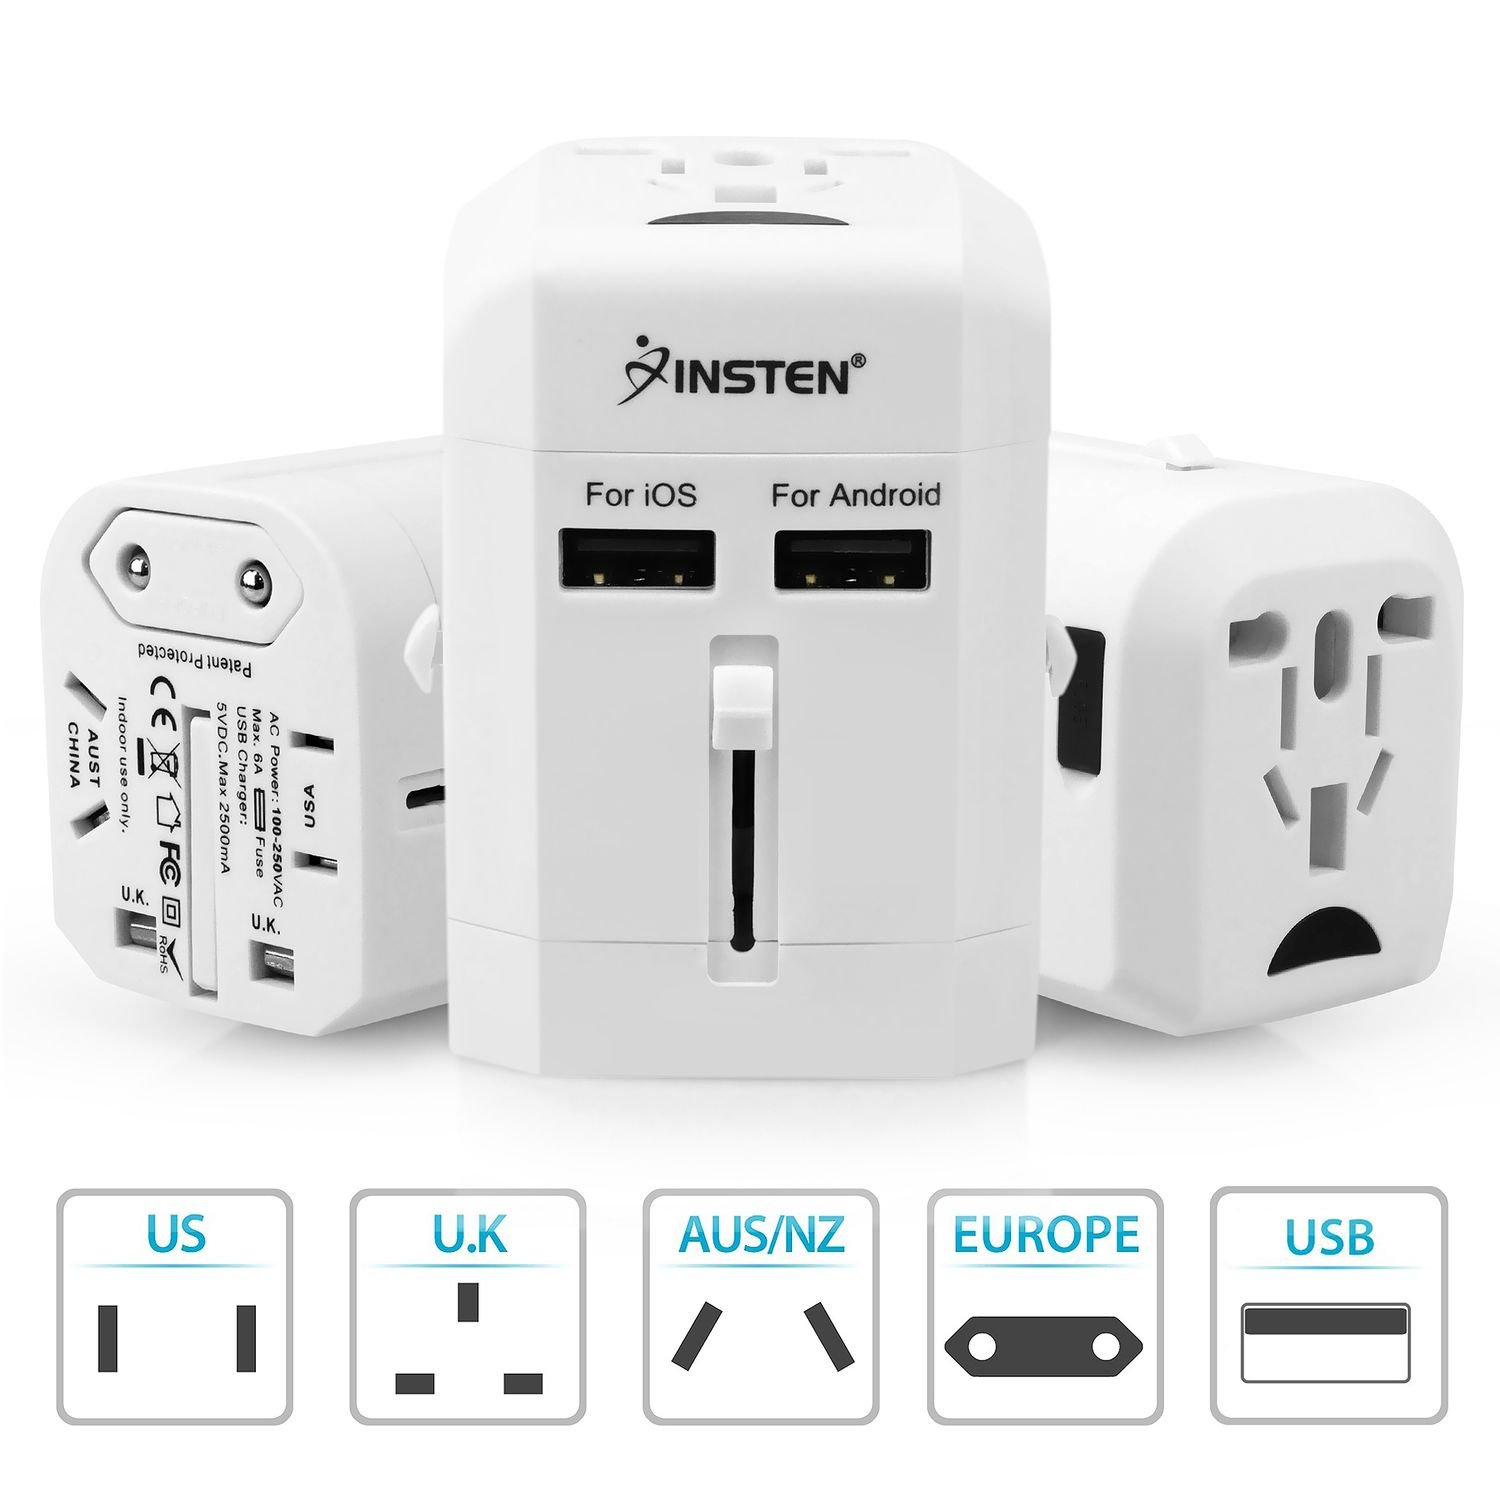 Insten Universal Worldwide Travel Adapter Wall Charger Power Plug AC Adapter with Dual USB Charging Ports for US/EU/UK/AU International Cellphone Laptop, White